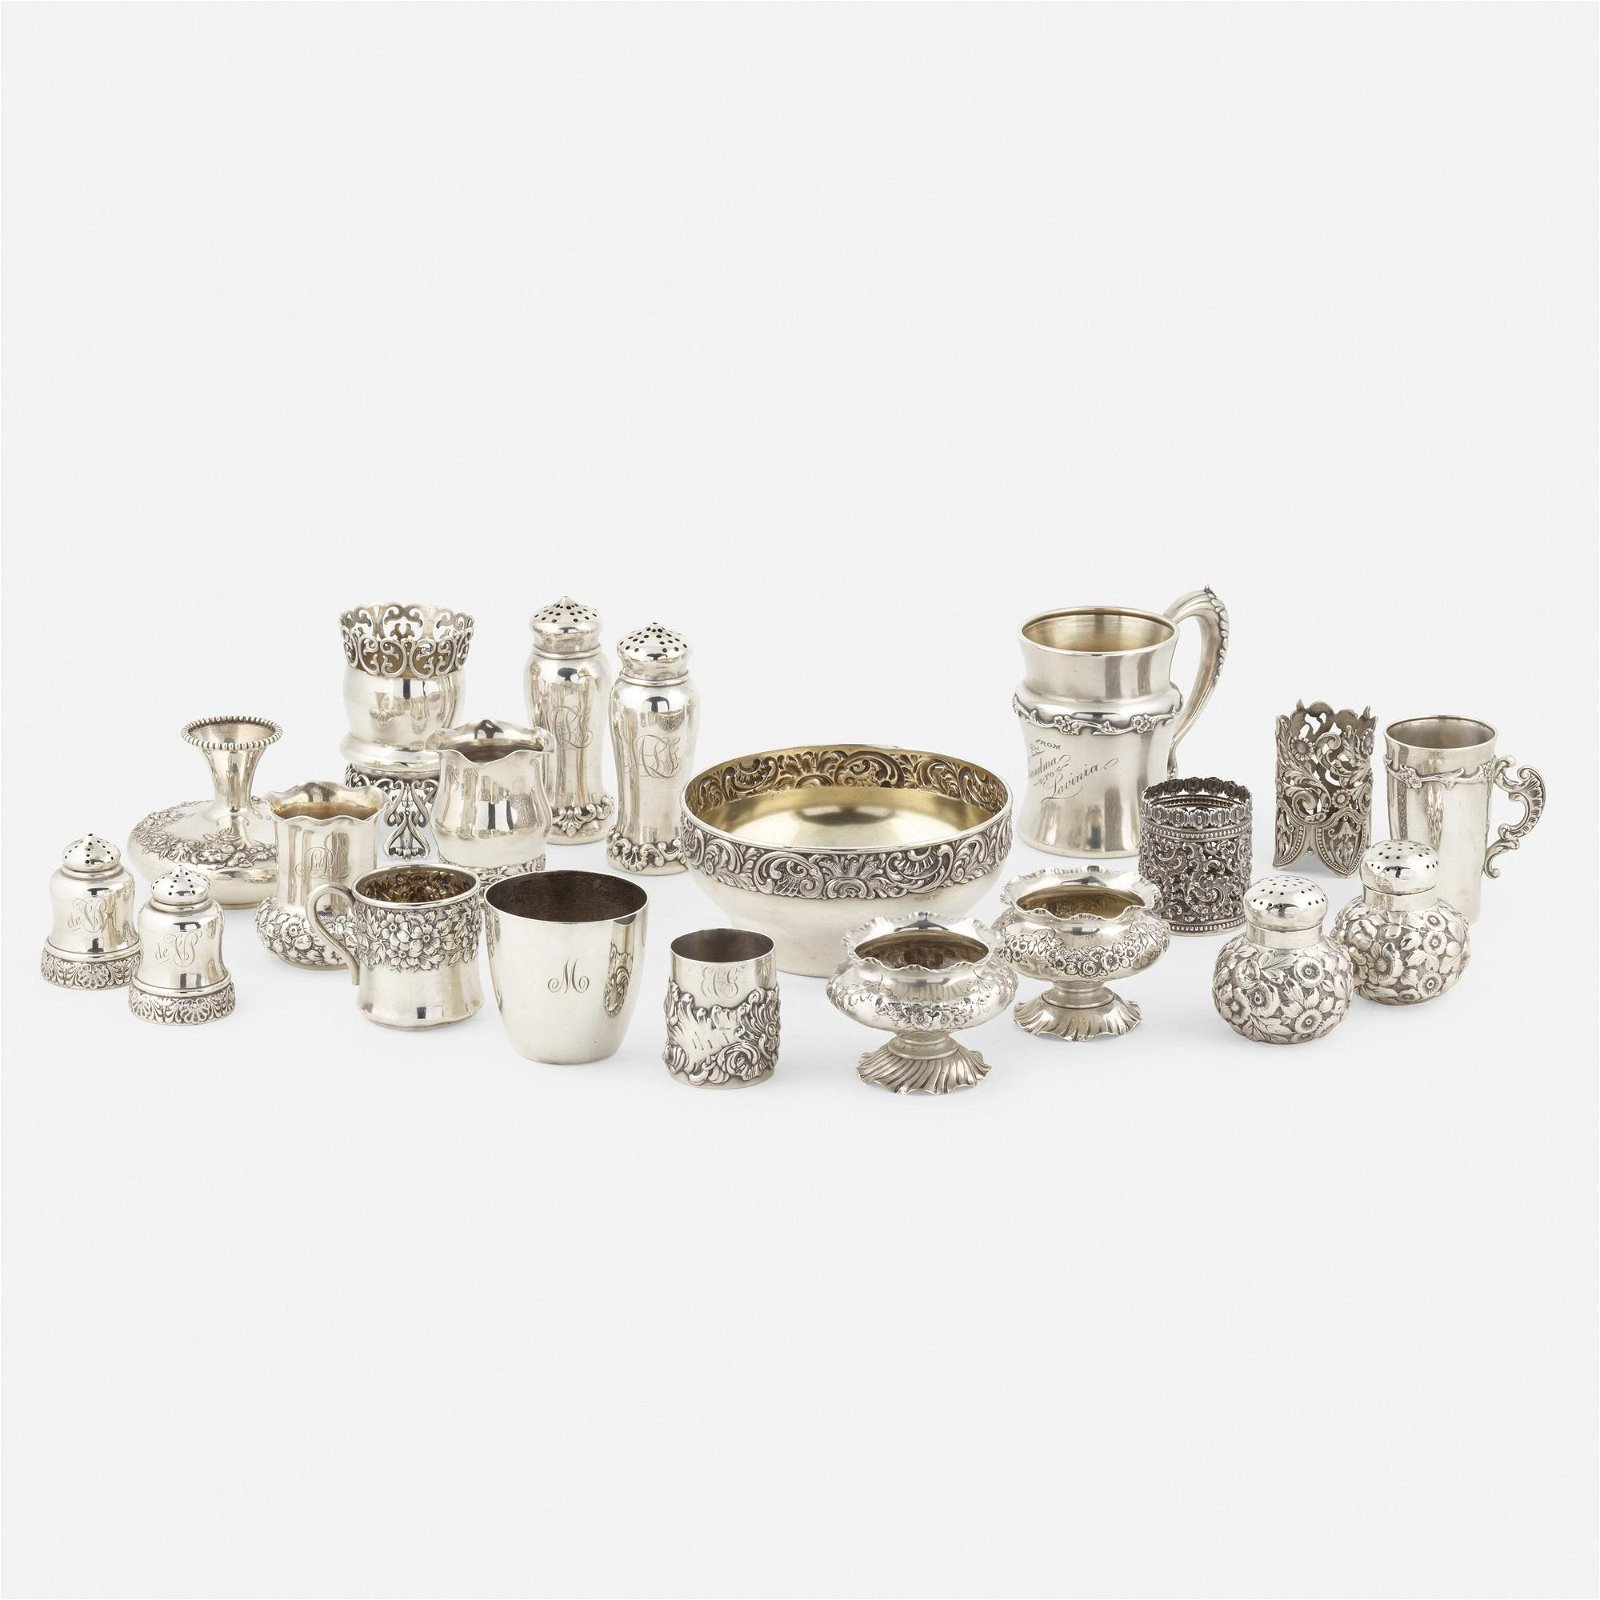 George W. Shiebler & Co., holloware items